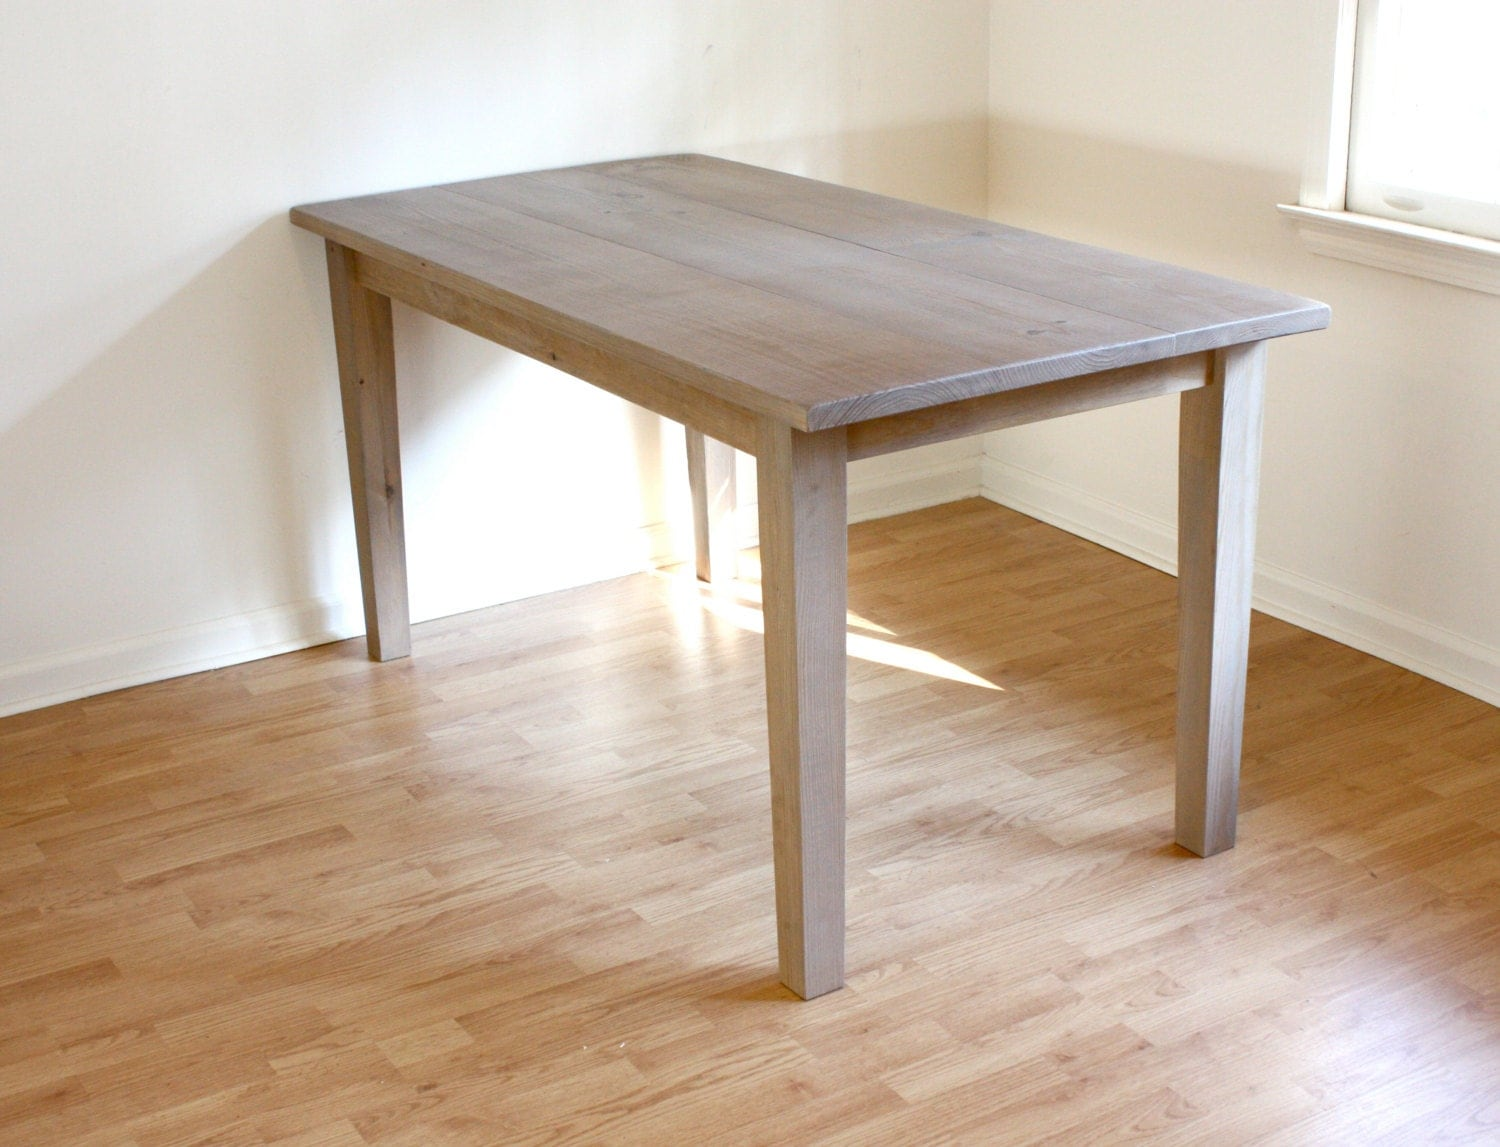 Handmade rustic farmhouse table reclaimed wood dining table for Handmade kitchen table